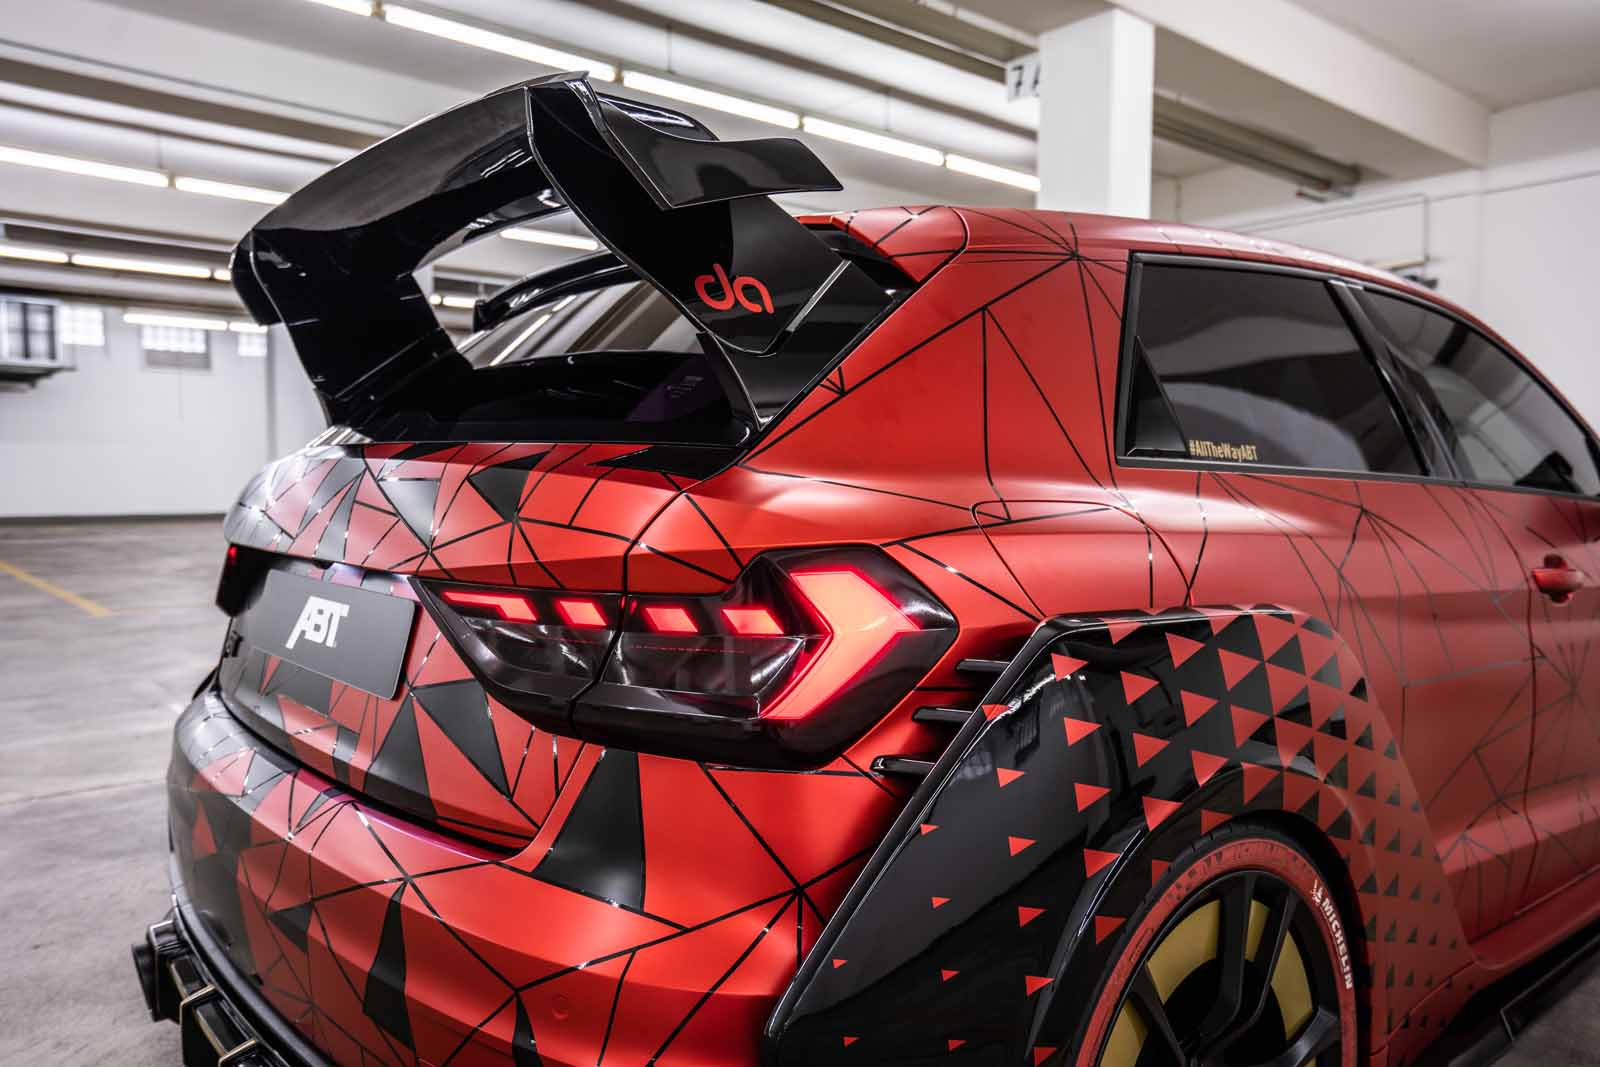 ABT_A1_1of1_carbon_wing_2